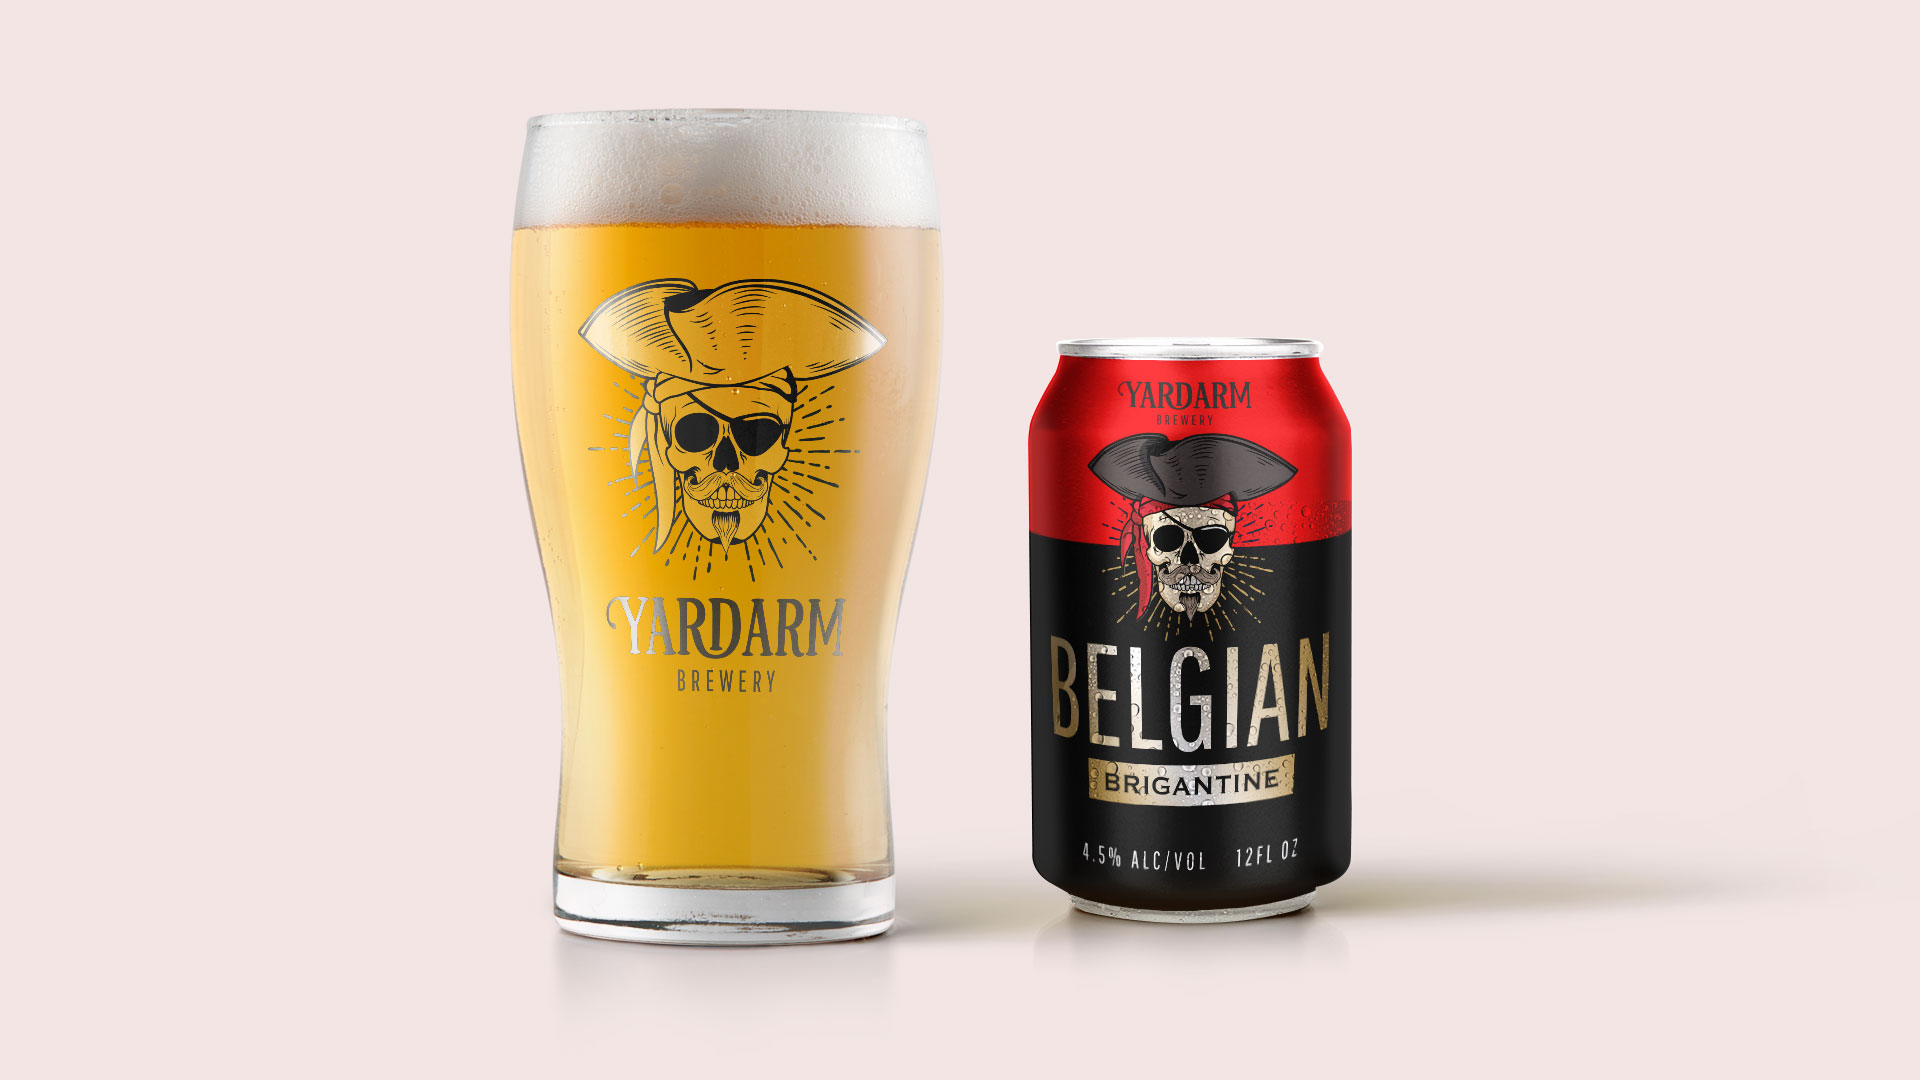 Yardarm Brewery pint glass and Belgian Brigantine can concept